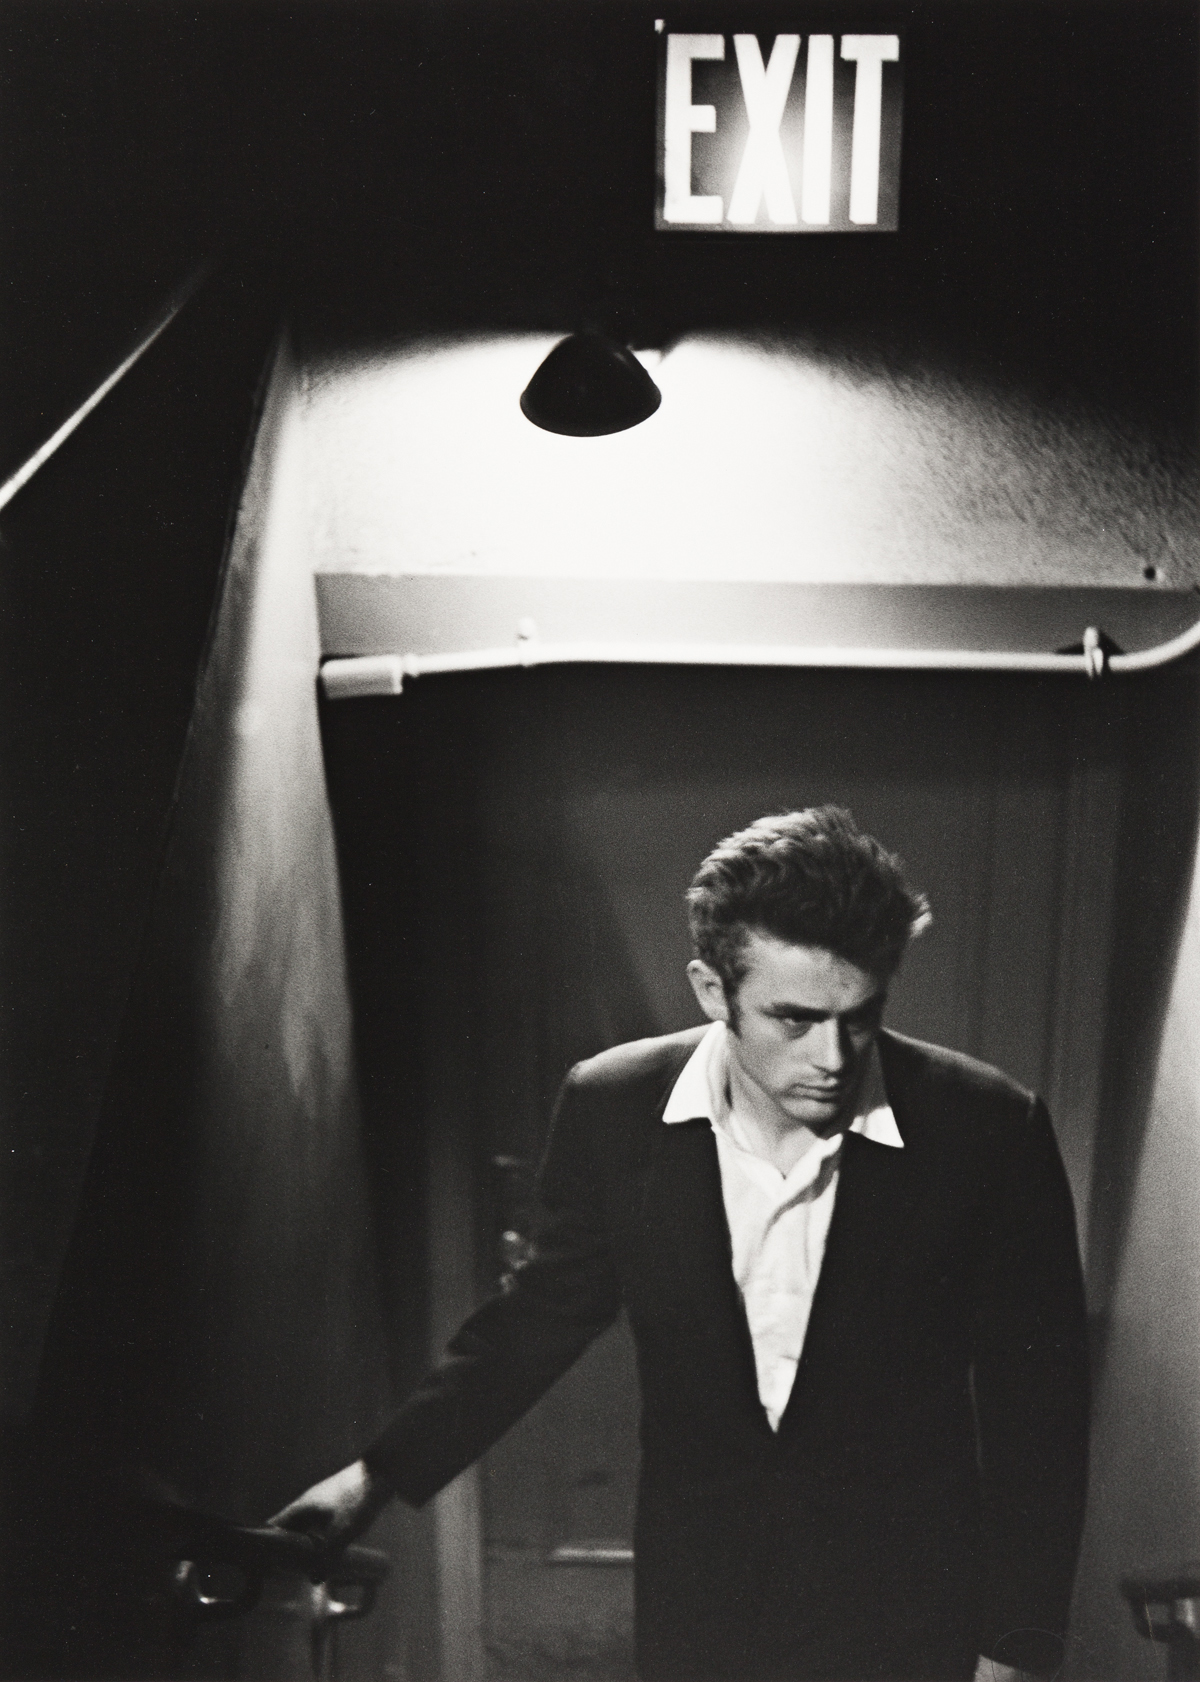 ROY-SCHATT-(1909-2002)-James-Dean-underneath-an-exit-sign